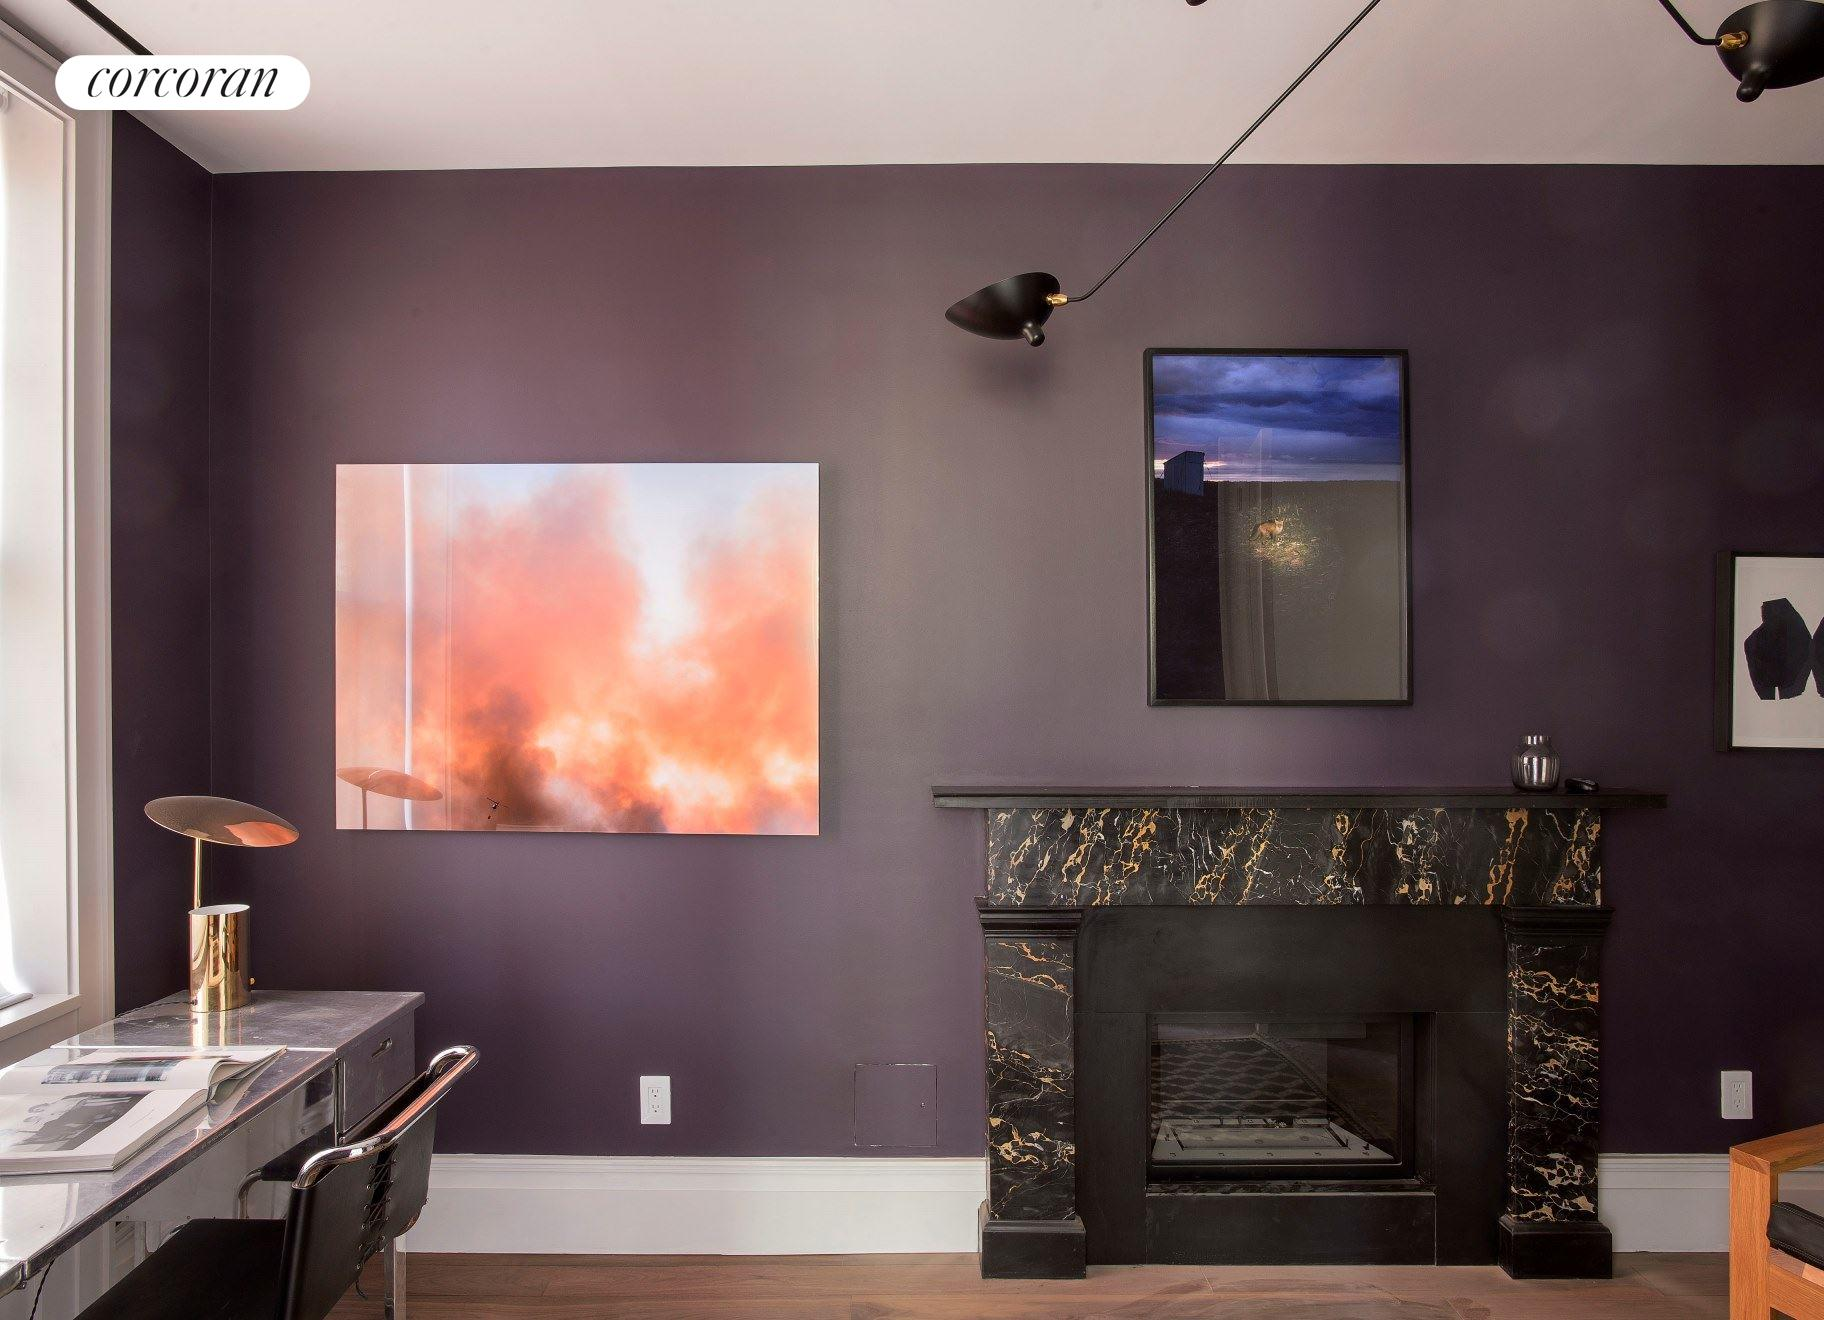 Single Family Home for Sale at 15 Willow Street 15 Willow Street Brooklyn, New York 11201 United States